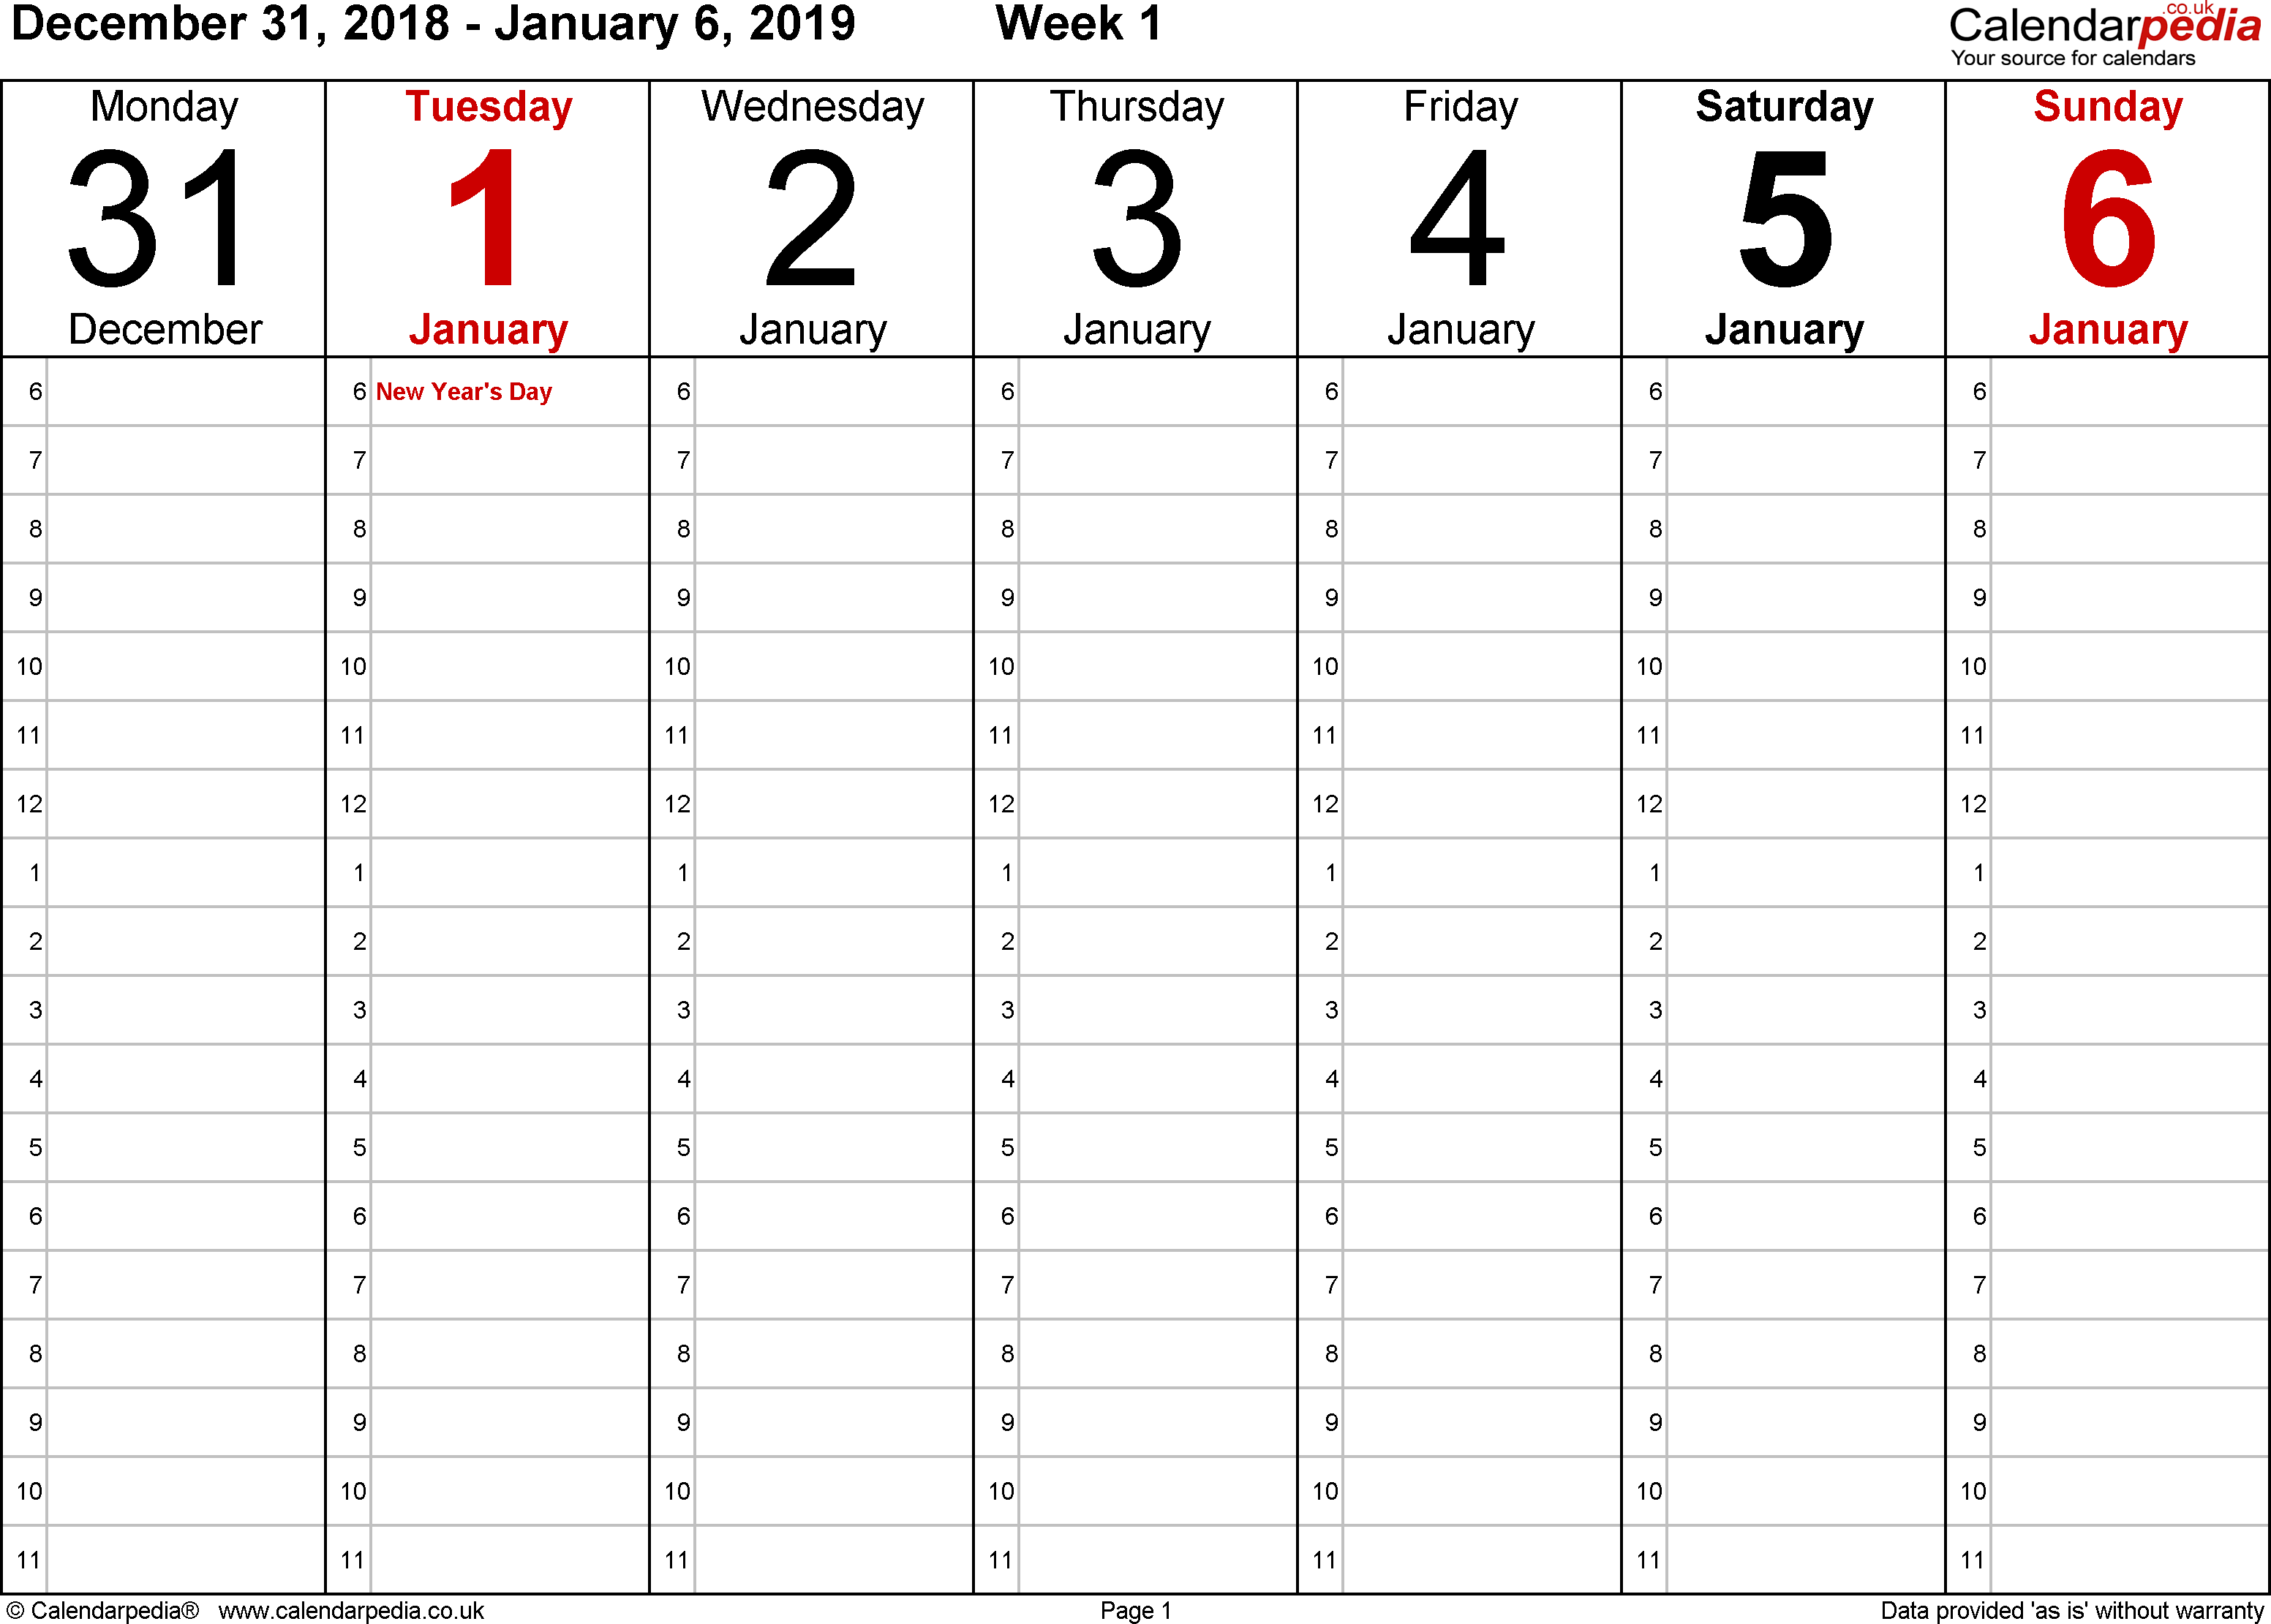 PDF template 1: Weekly calendar 2019, landscape orientation, 53 pages (1 calendar week on 1 page), time management layout (showing 18 hours per day from 6am to midnight in 1 hour steps)